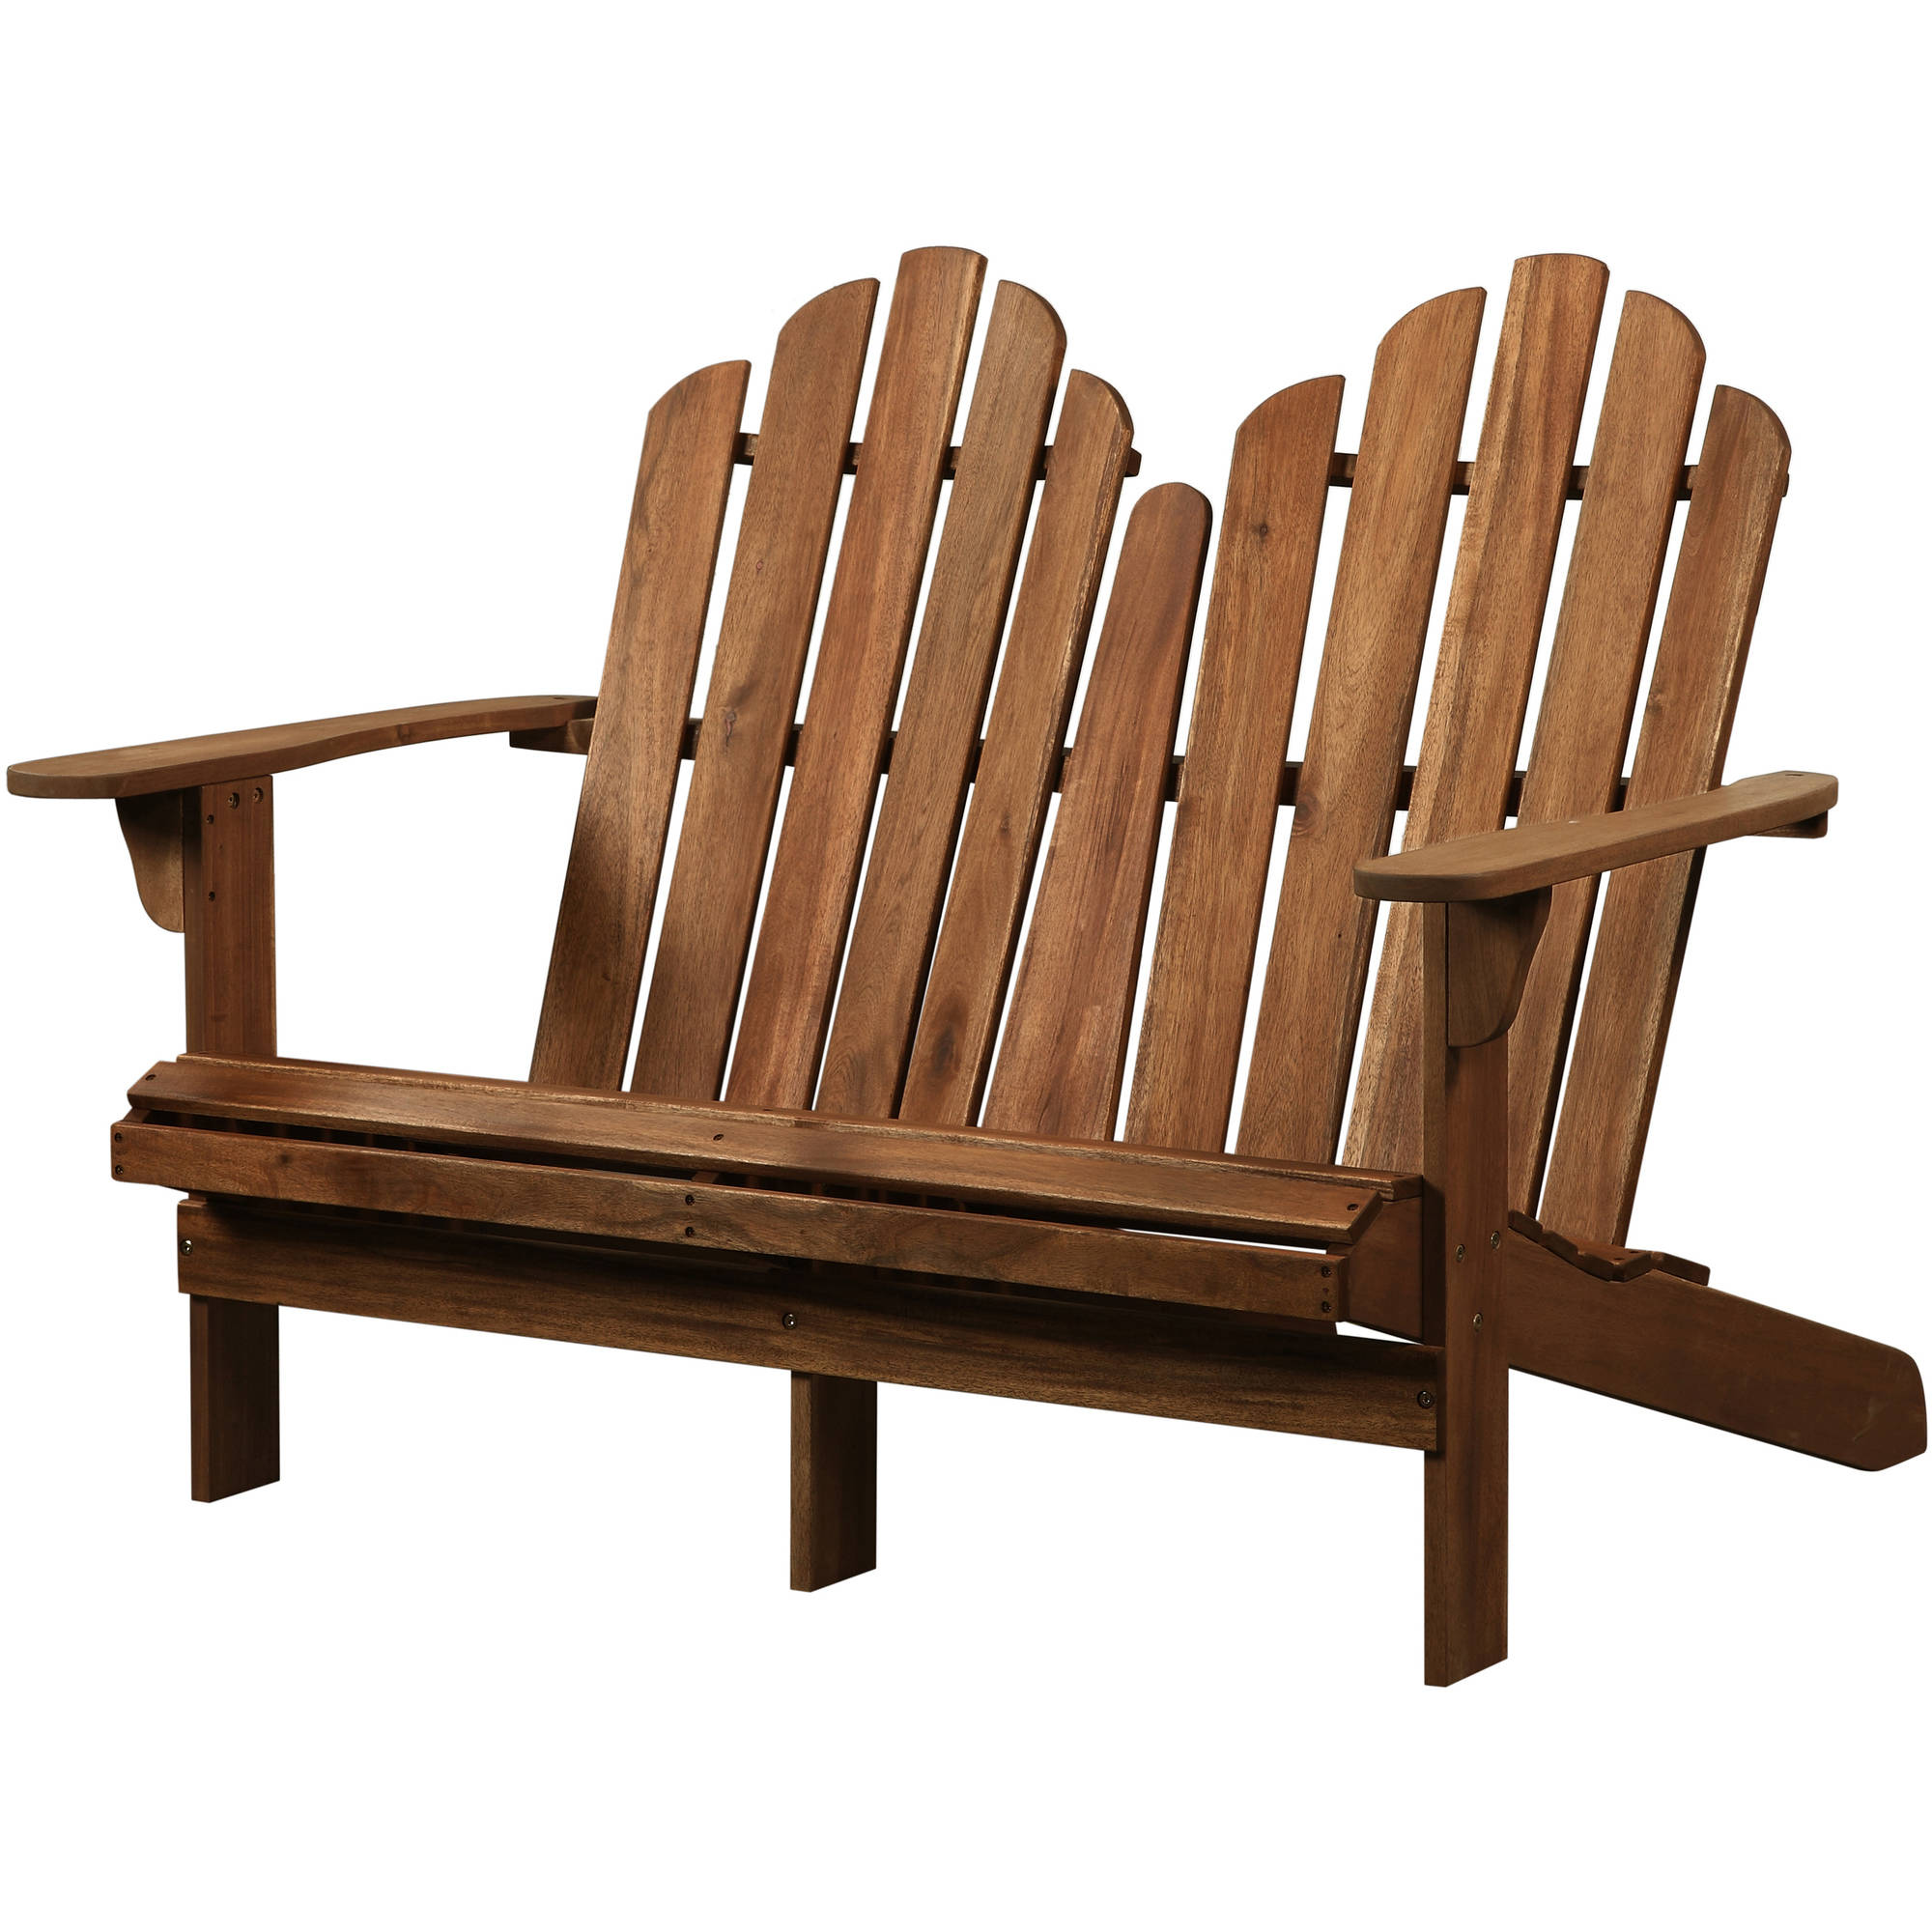 Linon Adirondack Double Bench, Brown by Linon Home Decor Products Inc